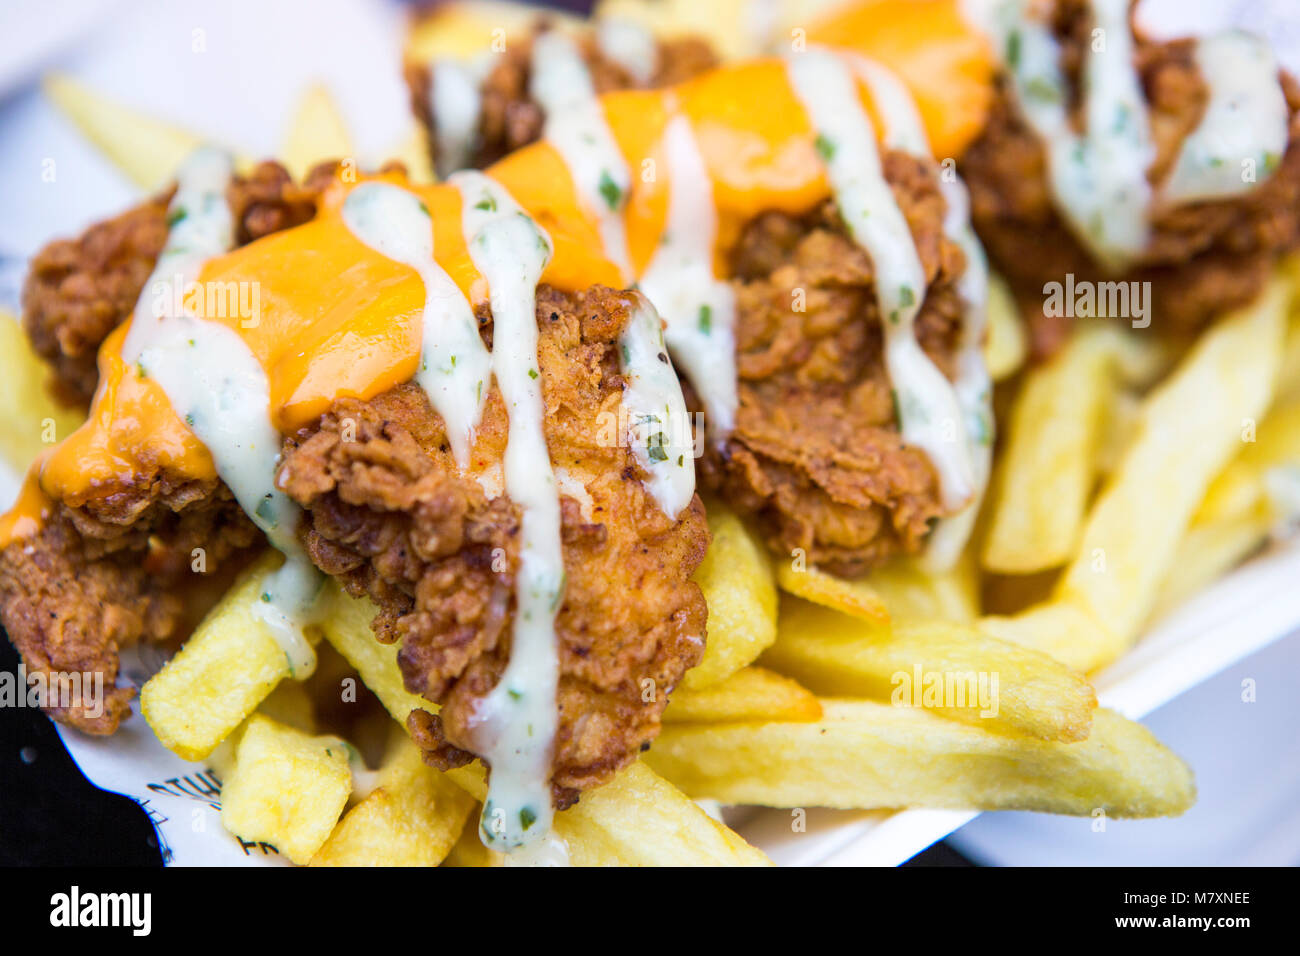 Fried chicken and chips with cheese. - Stock Image